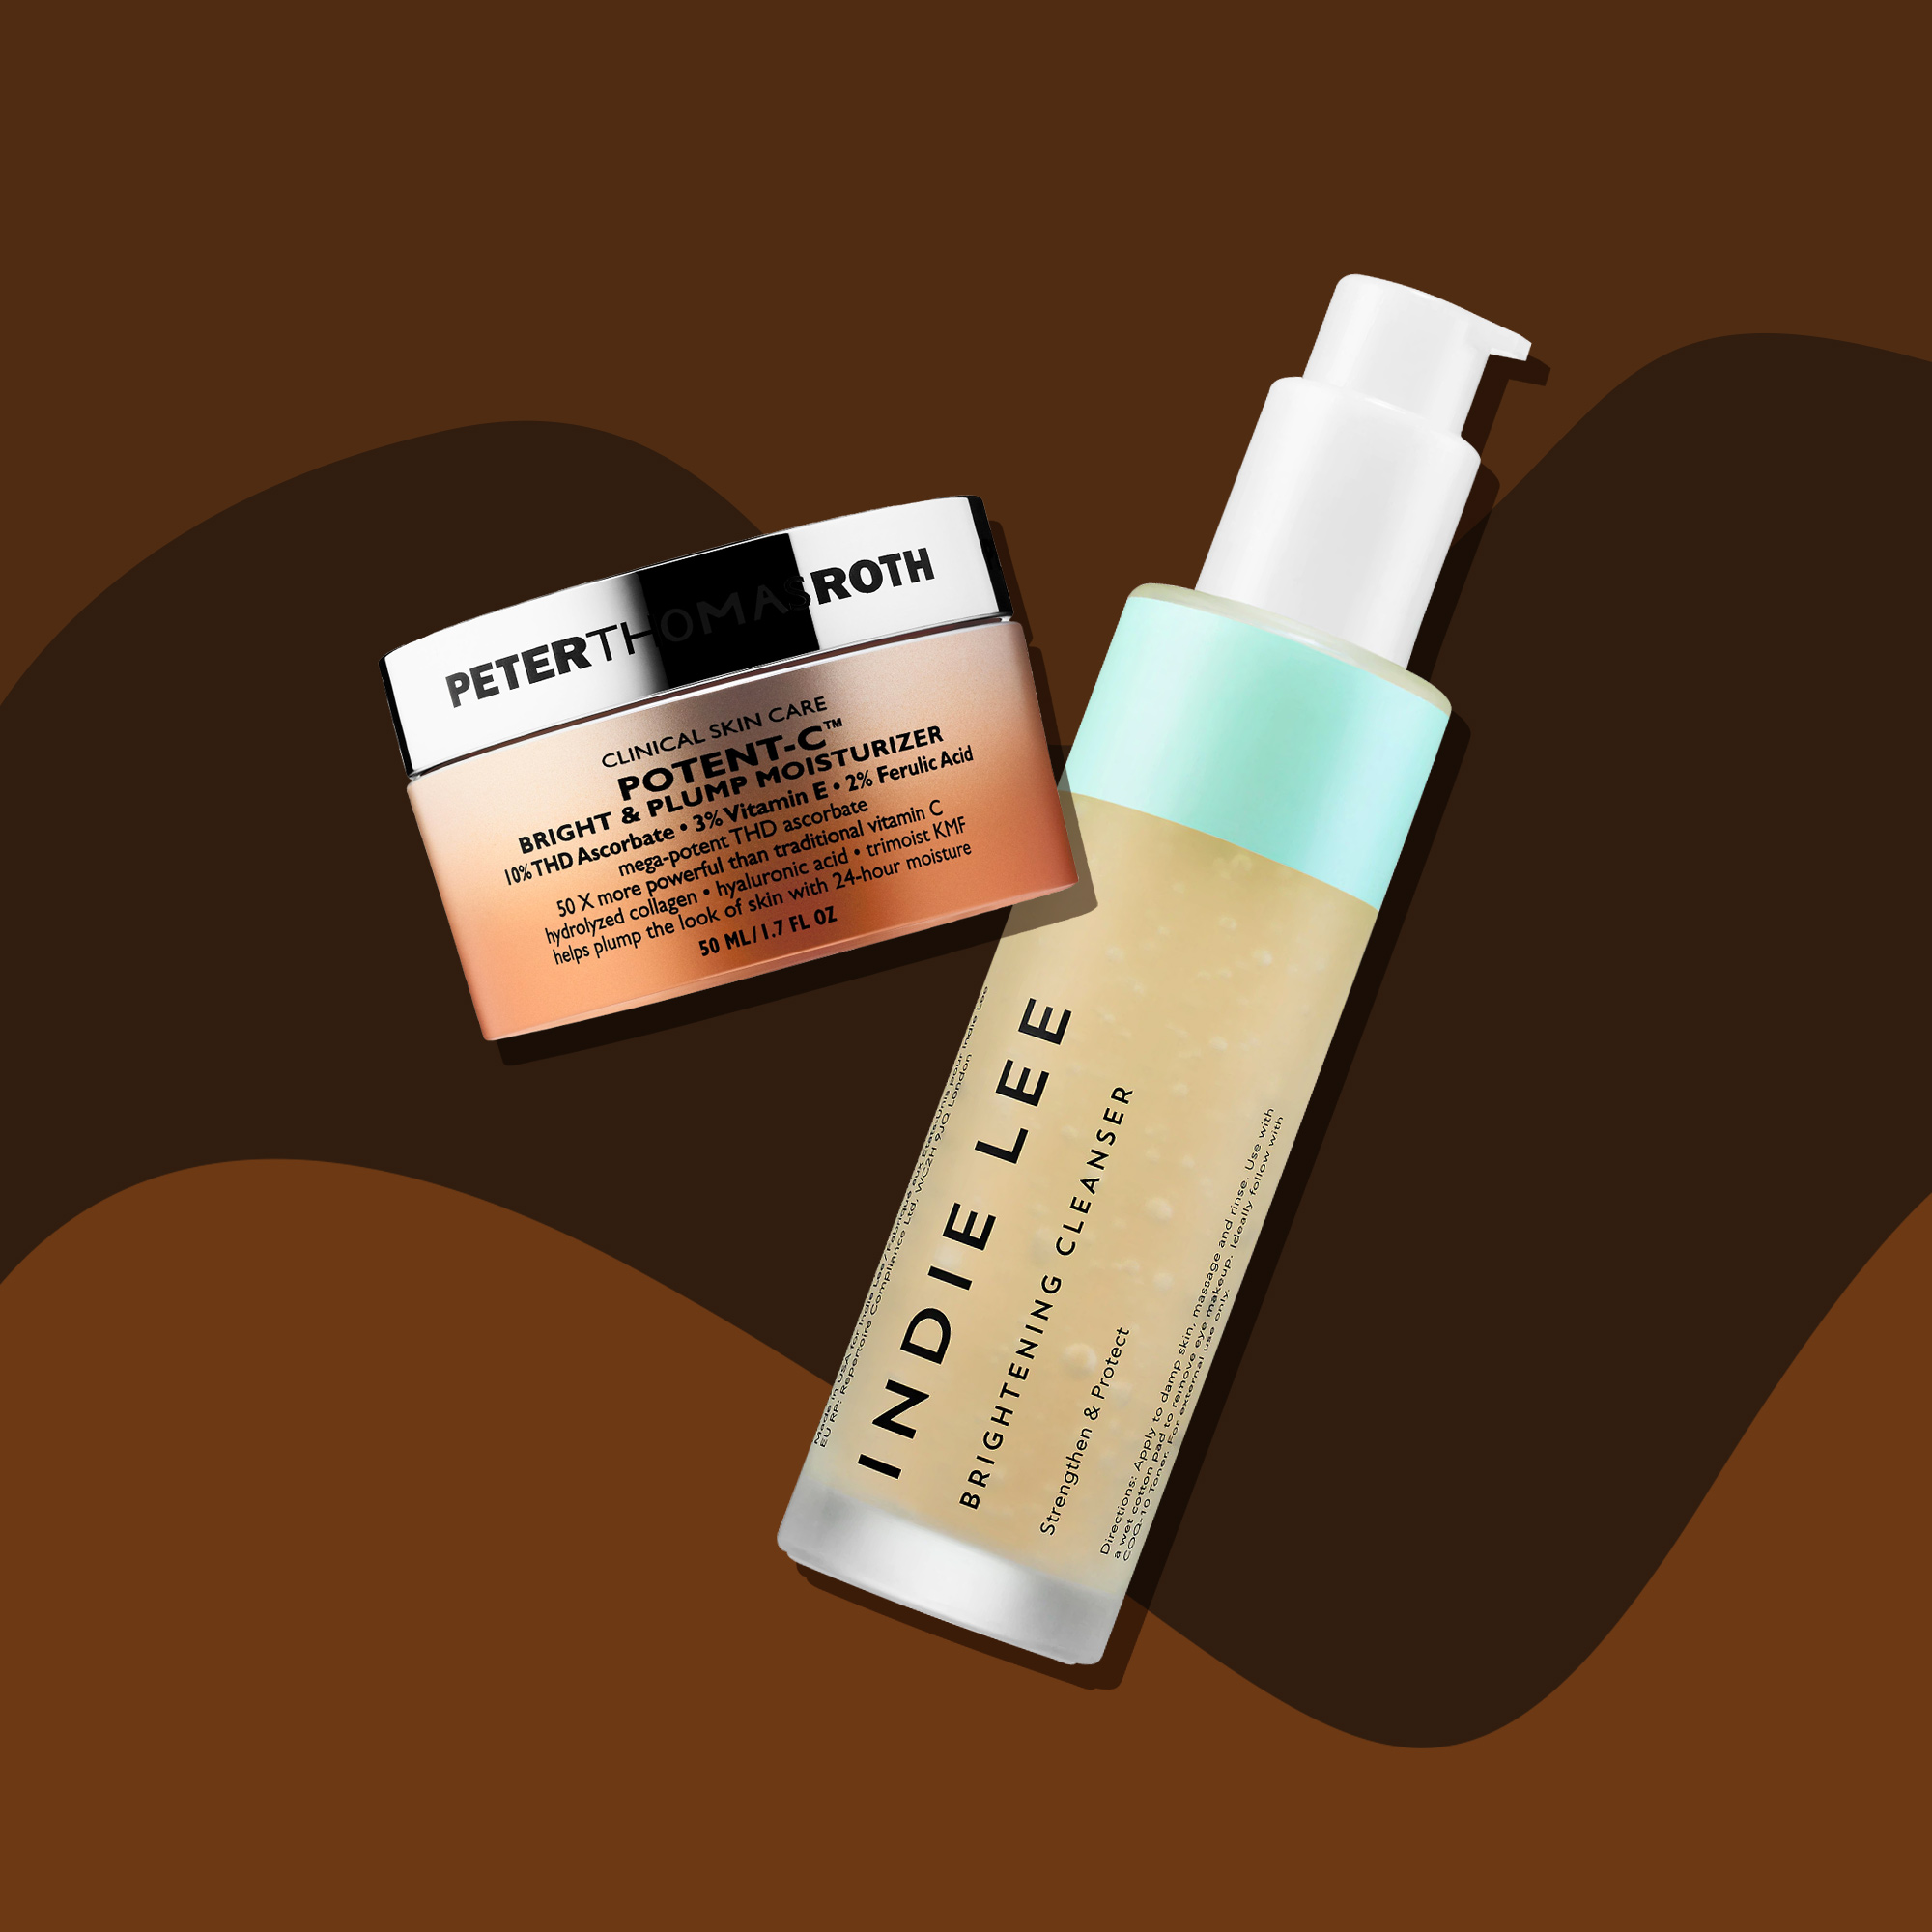 BEAUTY: STATE OF SKIN: Best Products for Uneven Skin Tone - Lead